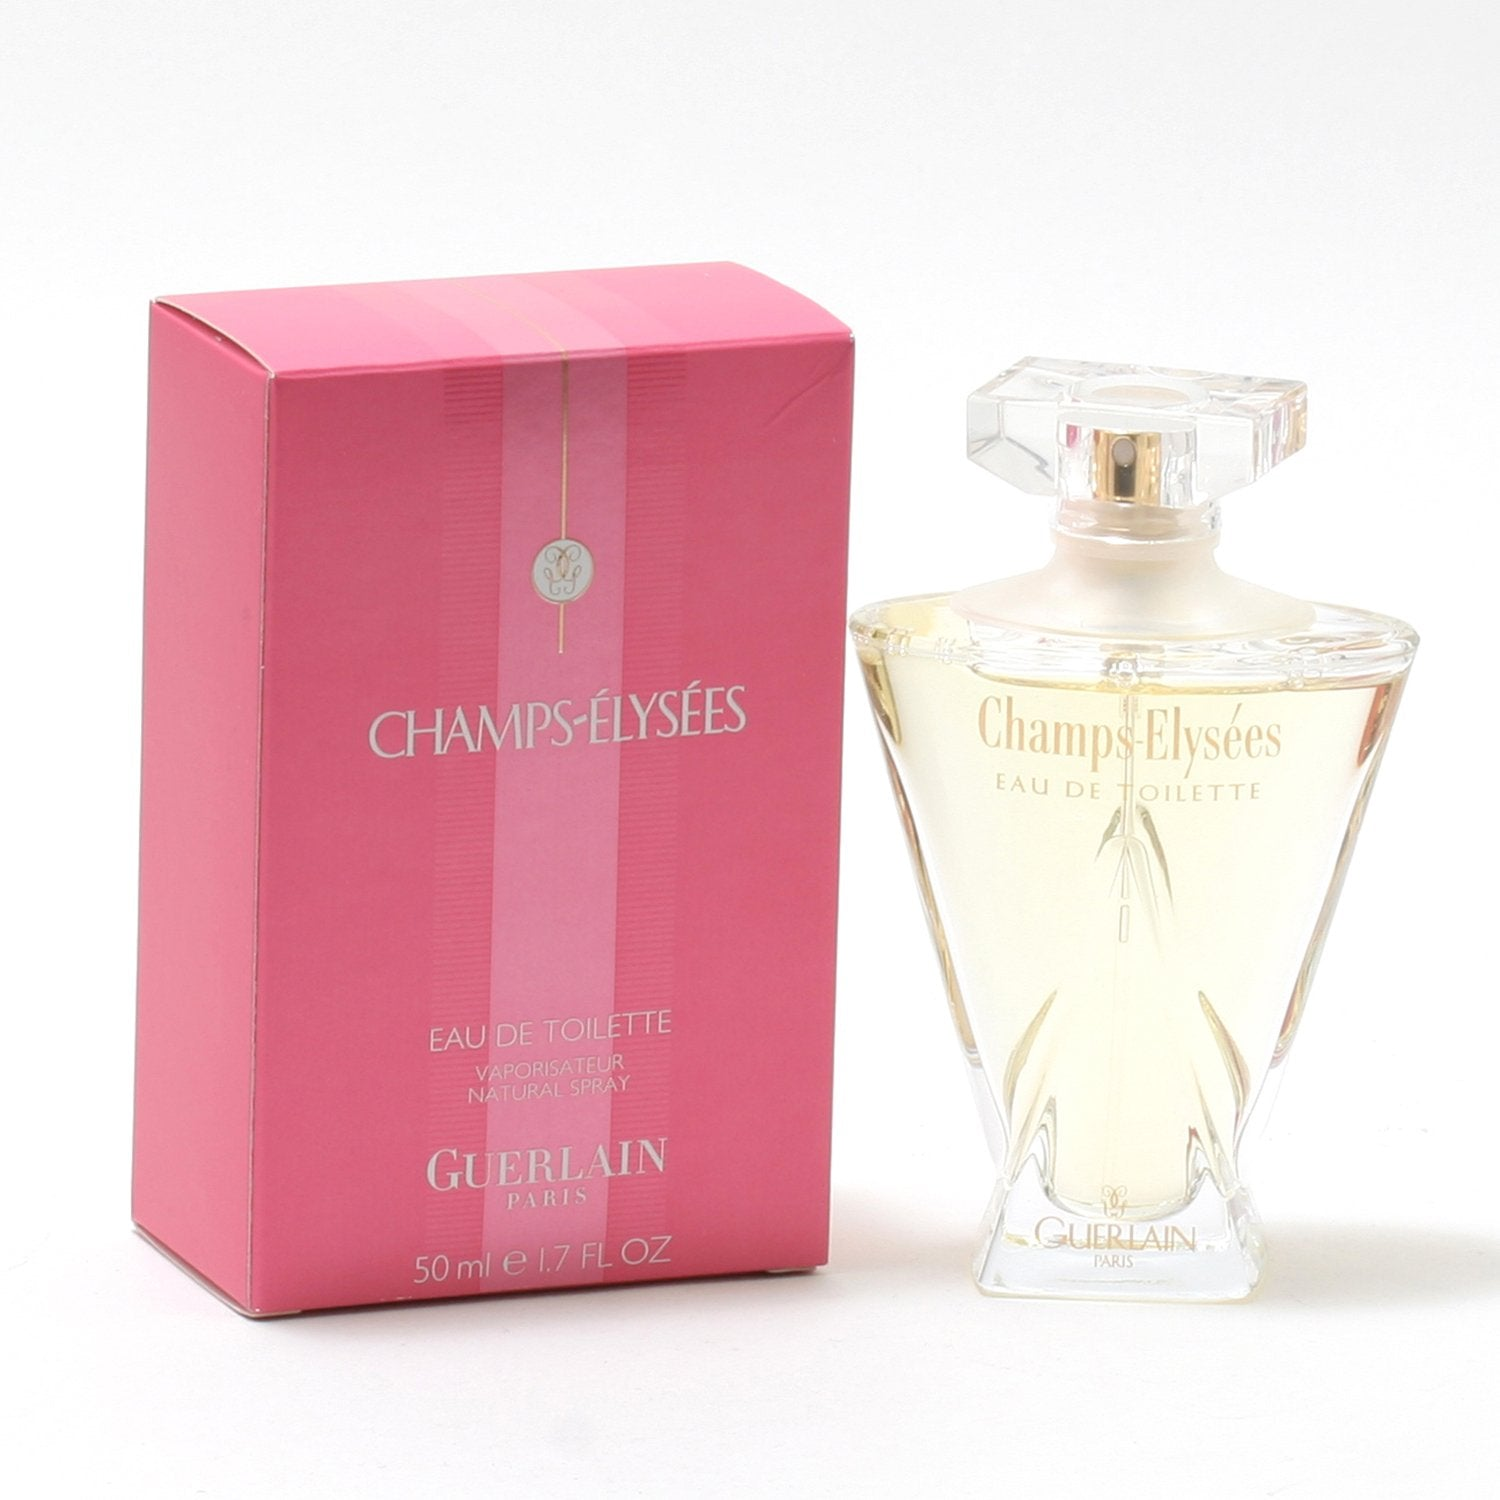 Perfume - CHAMPS ELYSEES FOR WOMEN BY GUERLAIN - EAU DE TOILETTE SPRAY, 1.7 OZ